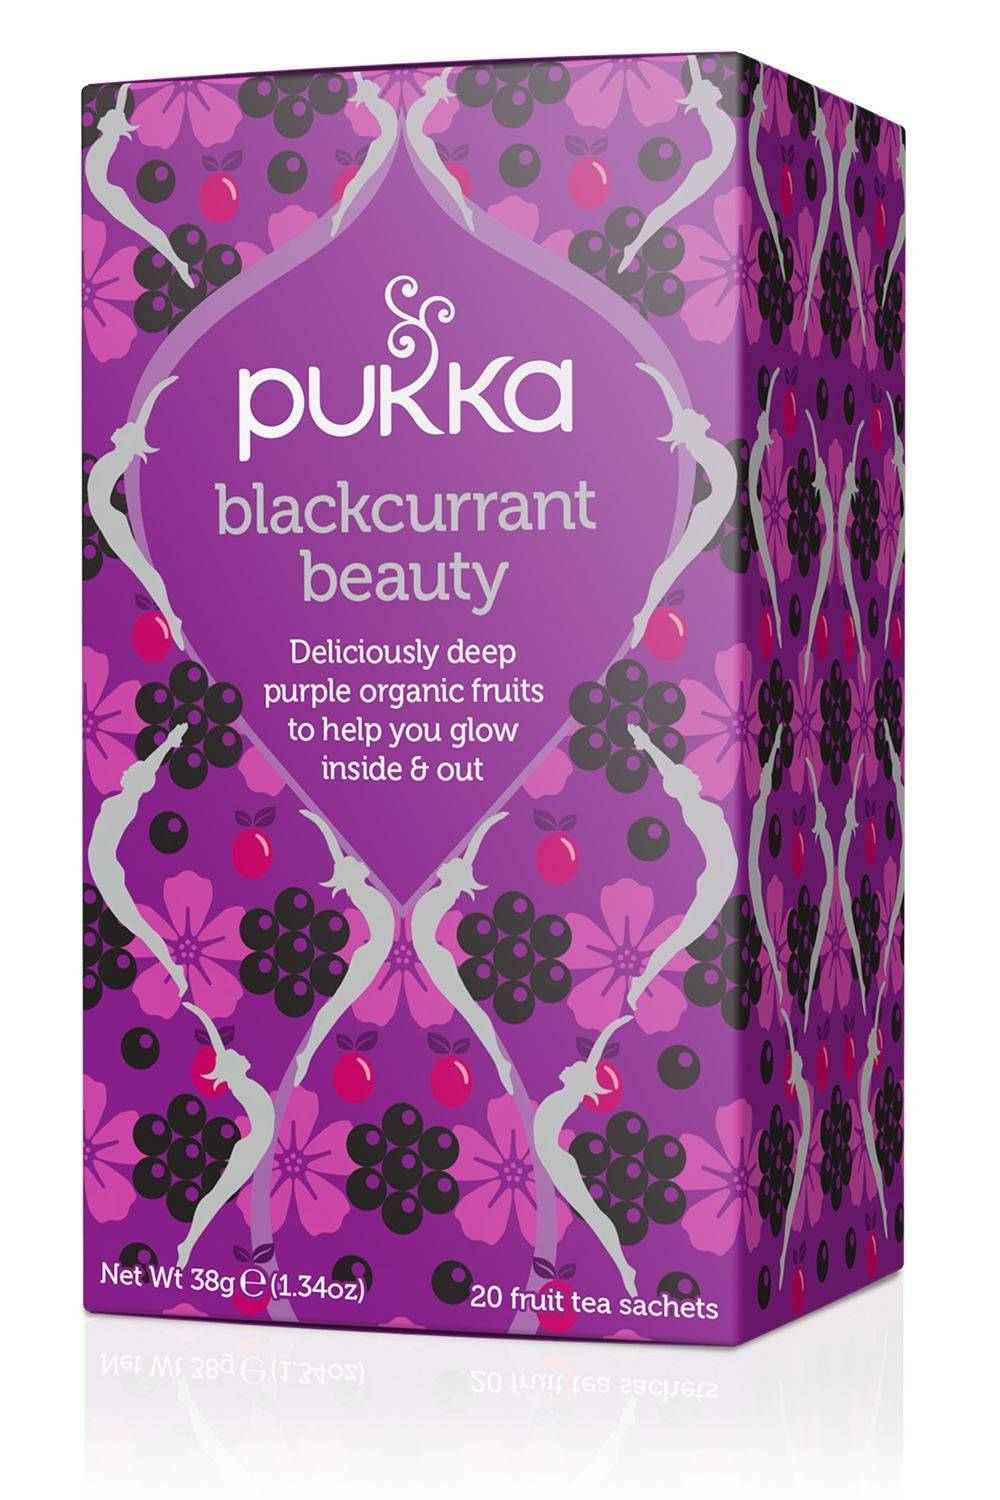 Pukka Blackcurrant Beauty - 20 Pose